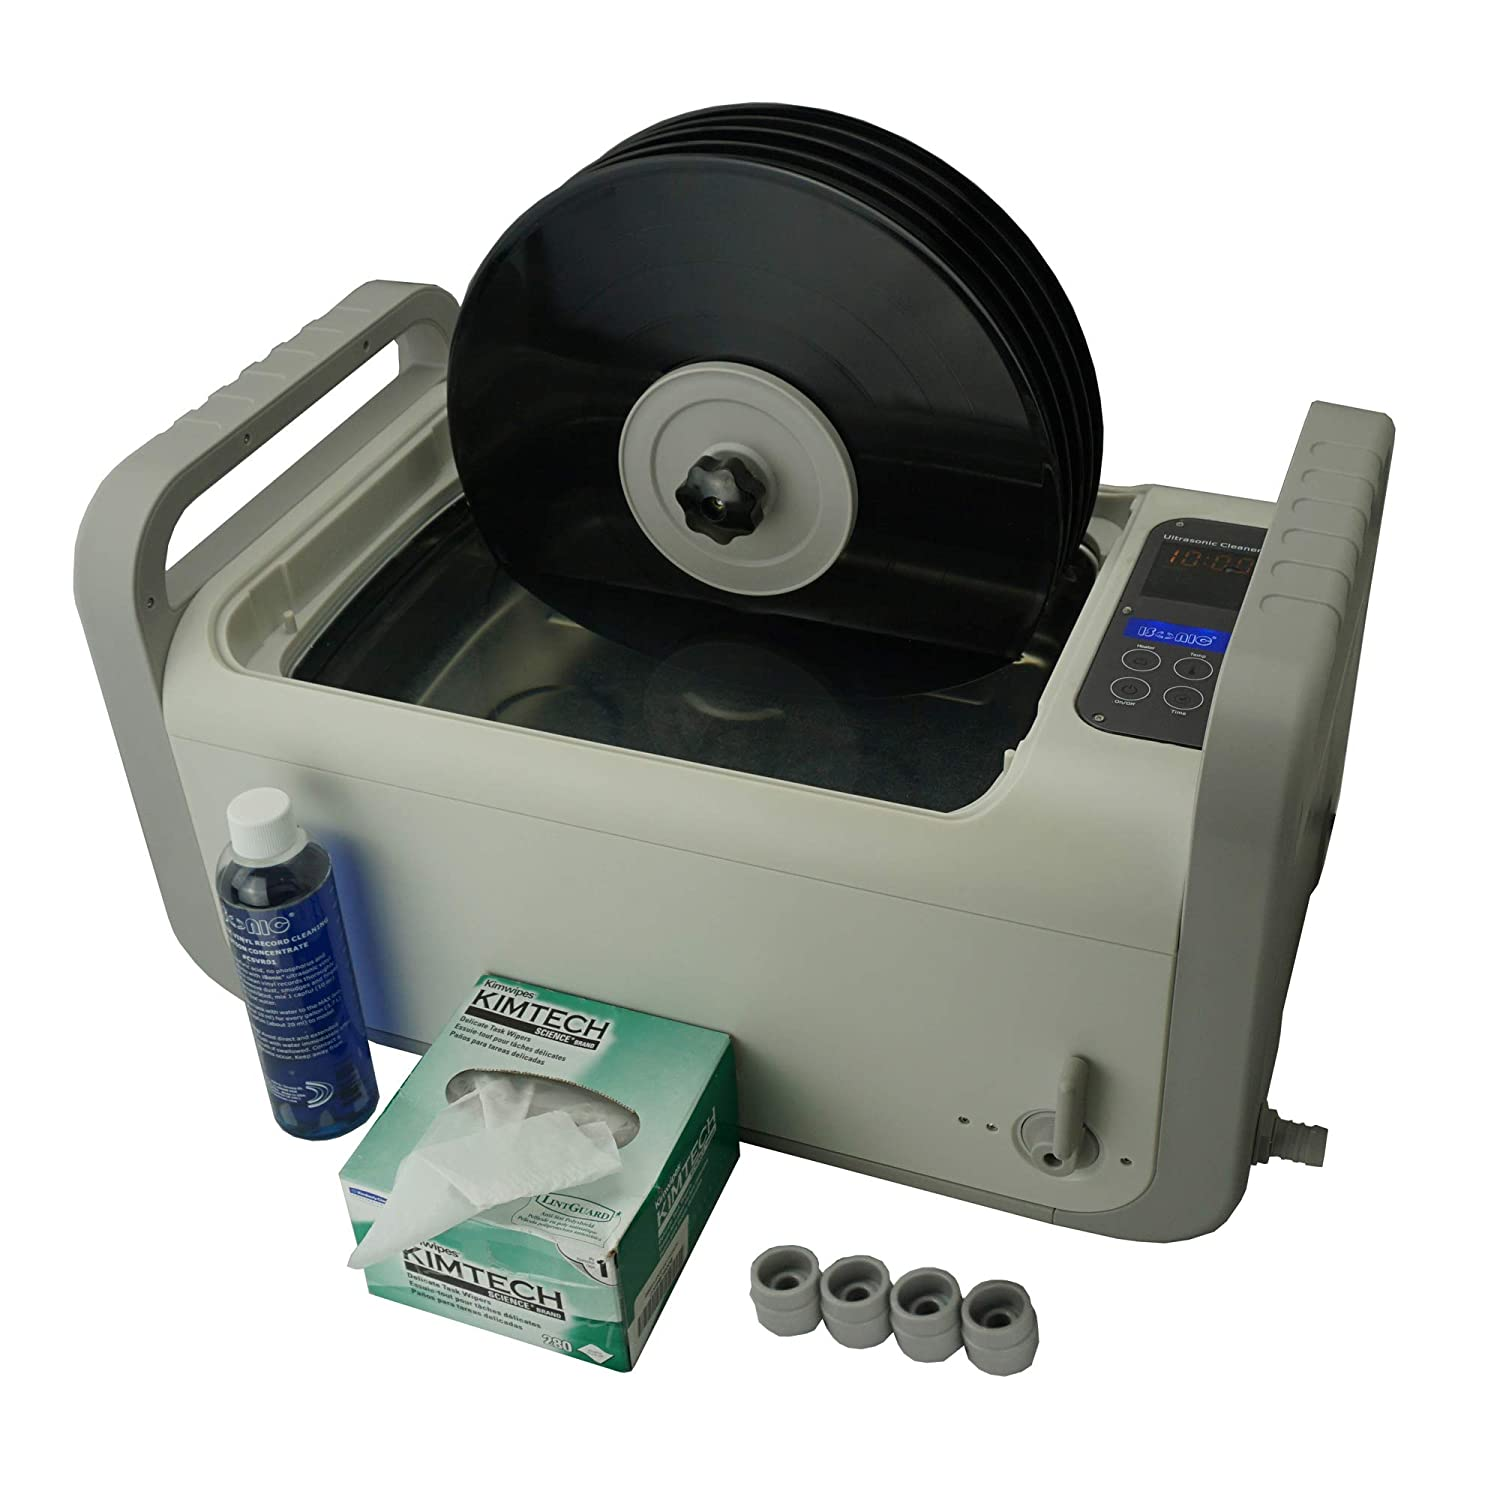 """iSonic P4875-NH+MVR5 or P4875II-4T-NH+MVR5 Motorized Ultrasonic Vinyl Record Cleaner for 5 12"""" to 10"""" Records, 2 Gal/7.5L, 110V, with Cleaning Solution Concentrate, Kimwipes no-lint Tissue, 4 spacers"""